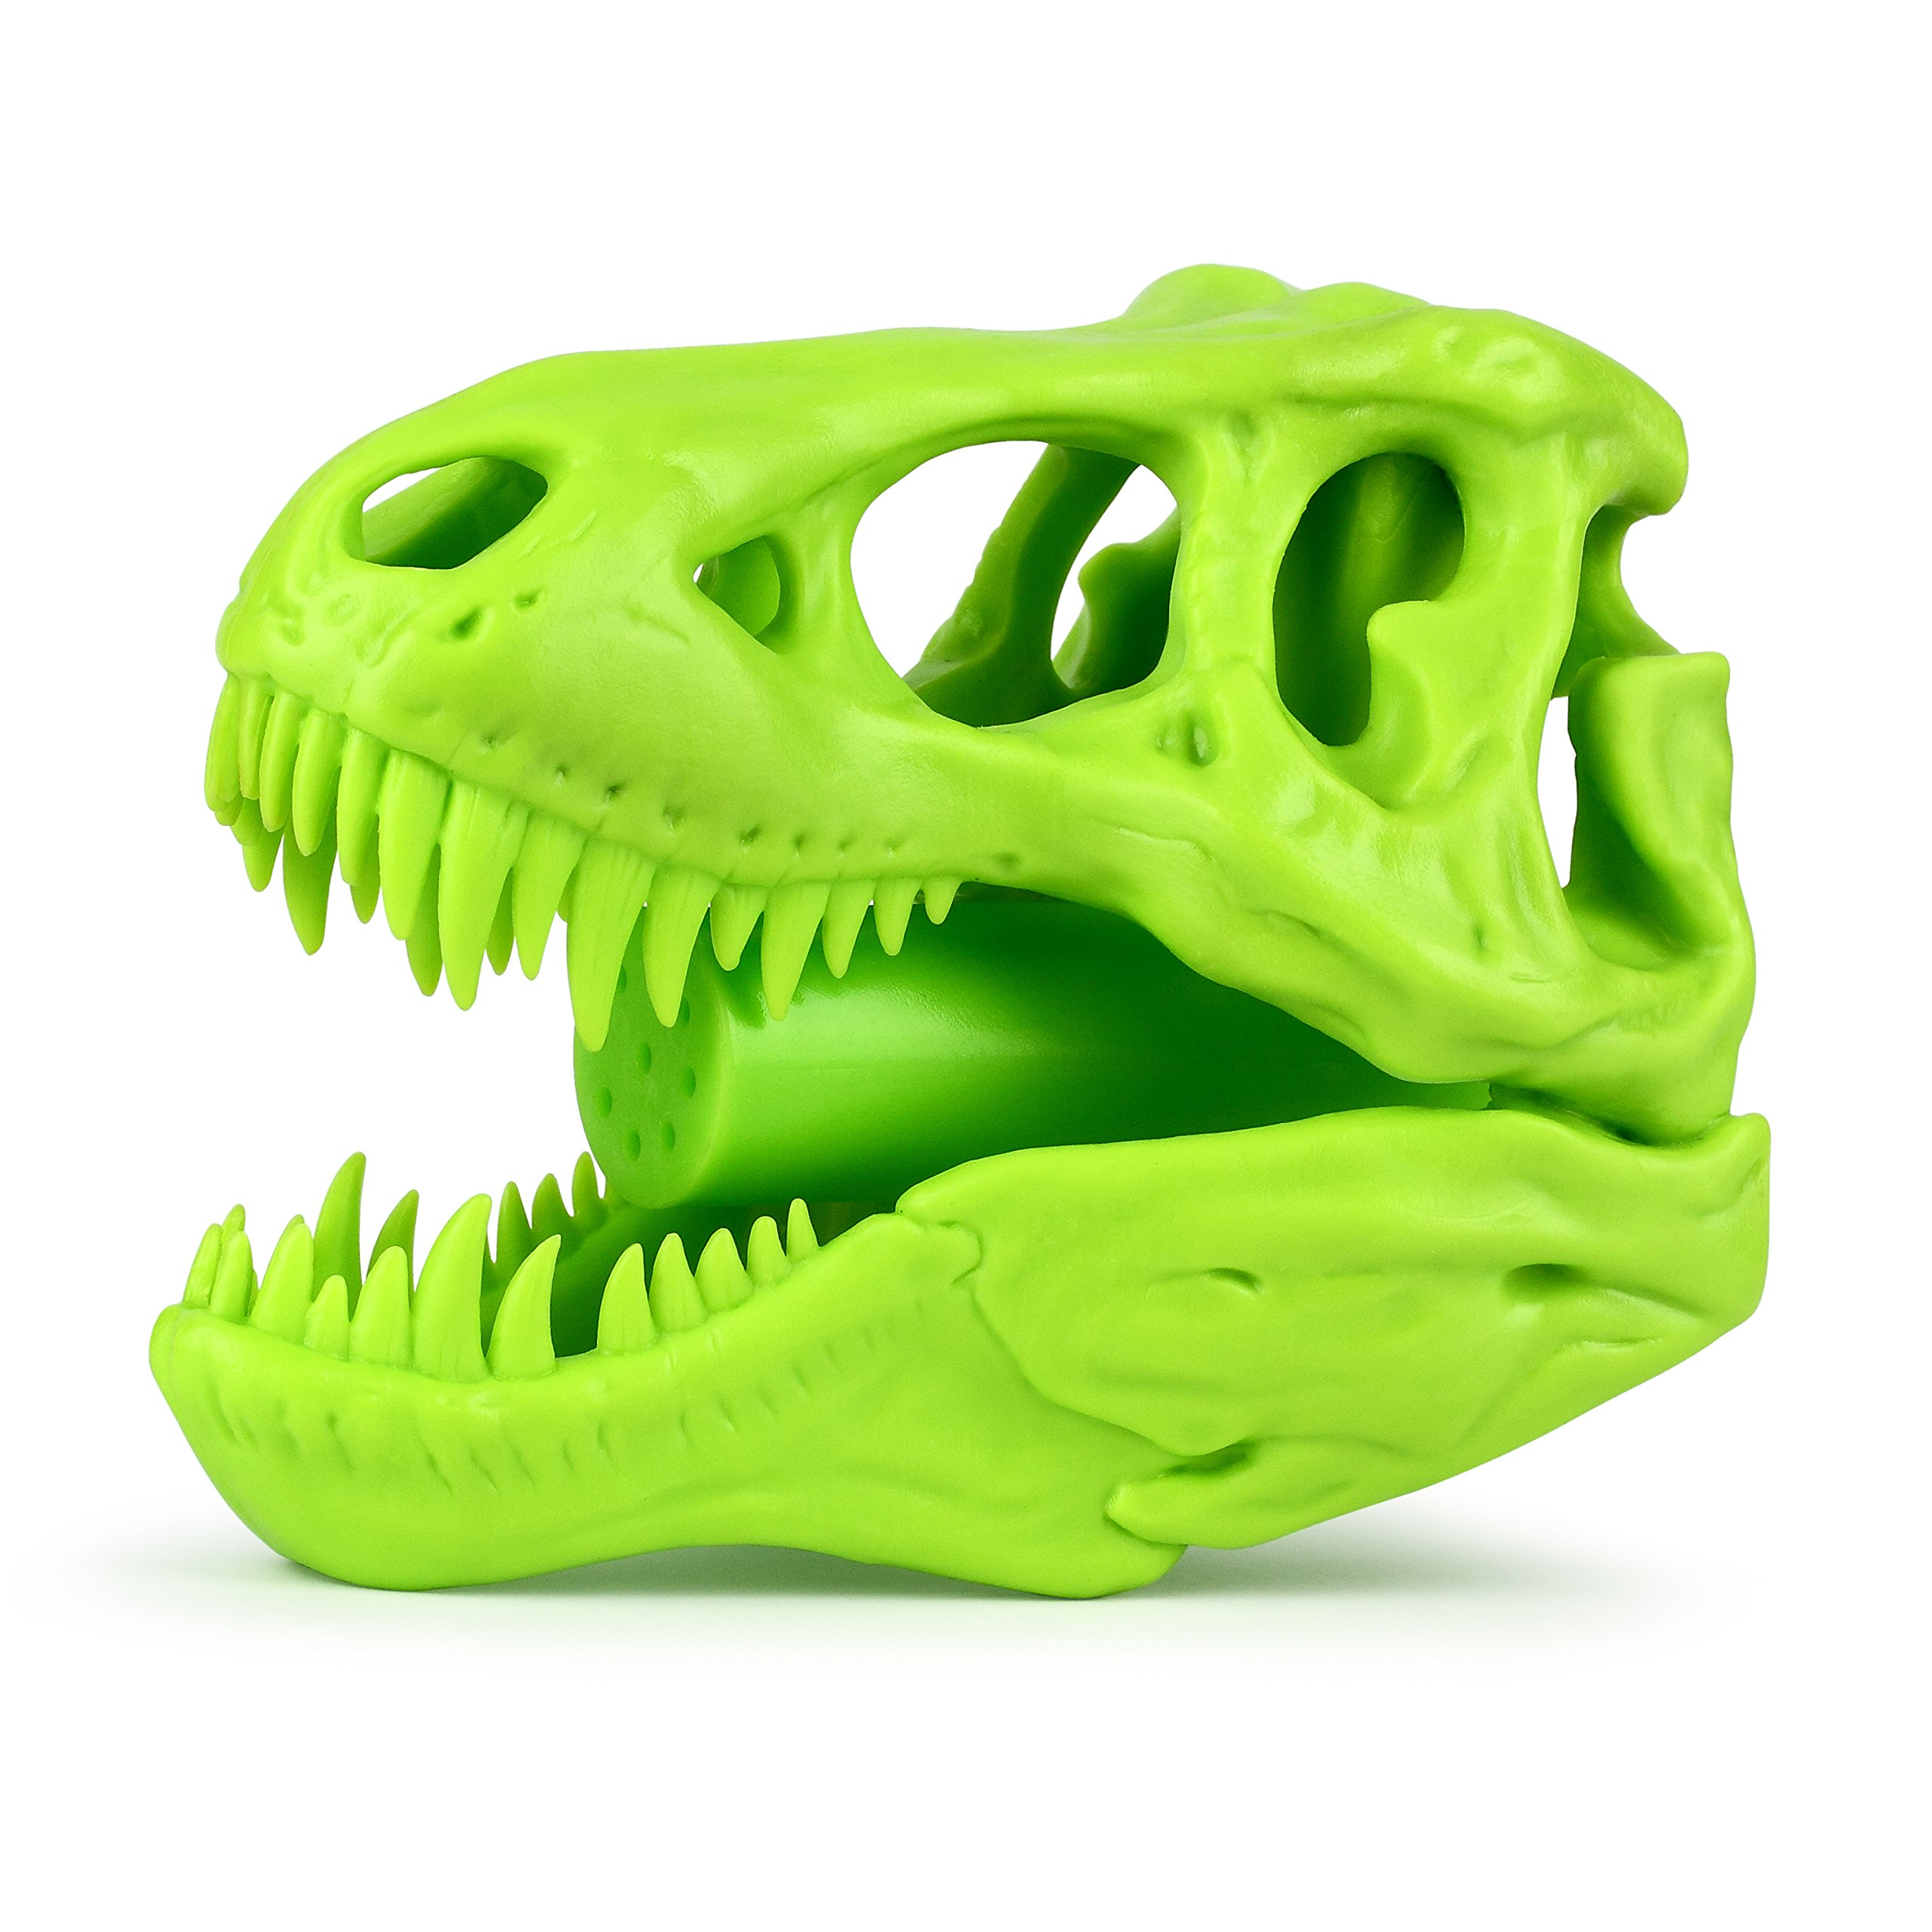 Barbuzzo T-Rex Shower Head, Green - Prehistoric Shower Nozzle Shaped like a Tyrannosaurus Rex Skull - Gives Your Shower-Time a Jurassic Touch - Terrific Gift for Kids & Dino-Enthusiasts - Wash N' Roar by Barbuzzo (Image #3)